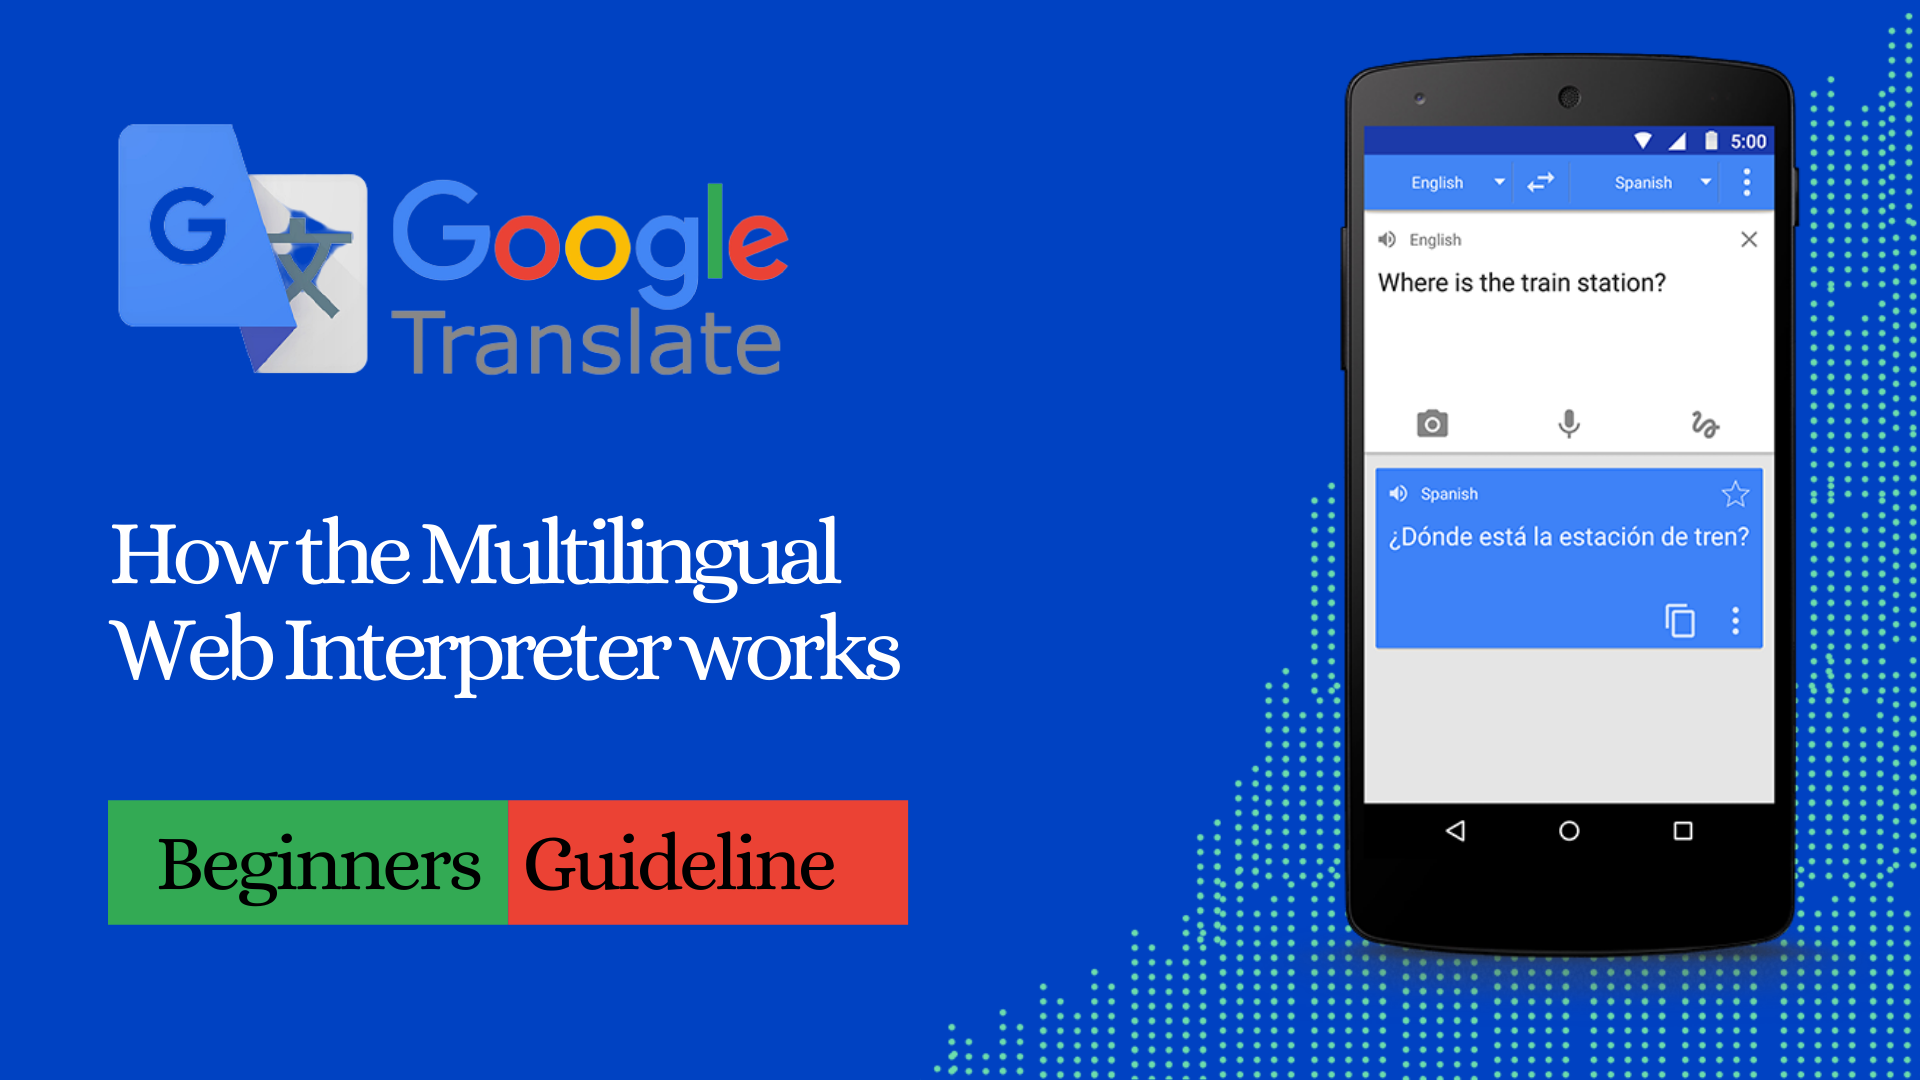 What is Google Translate?